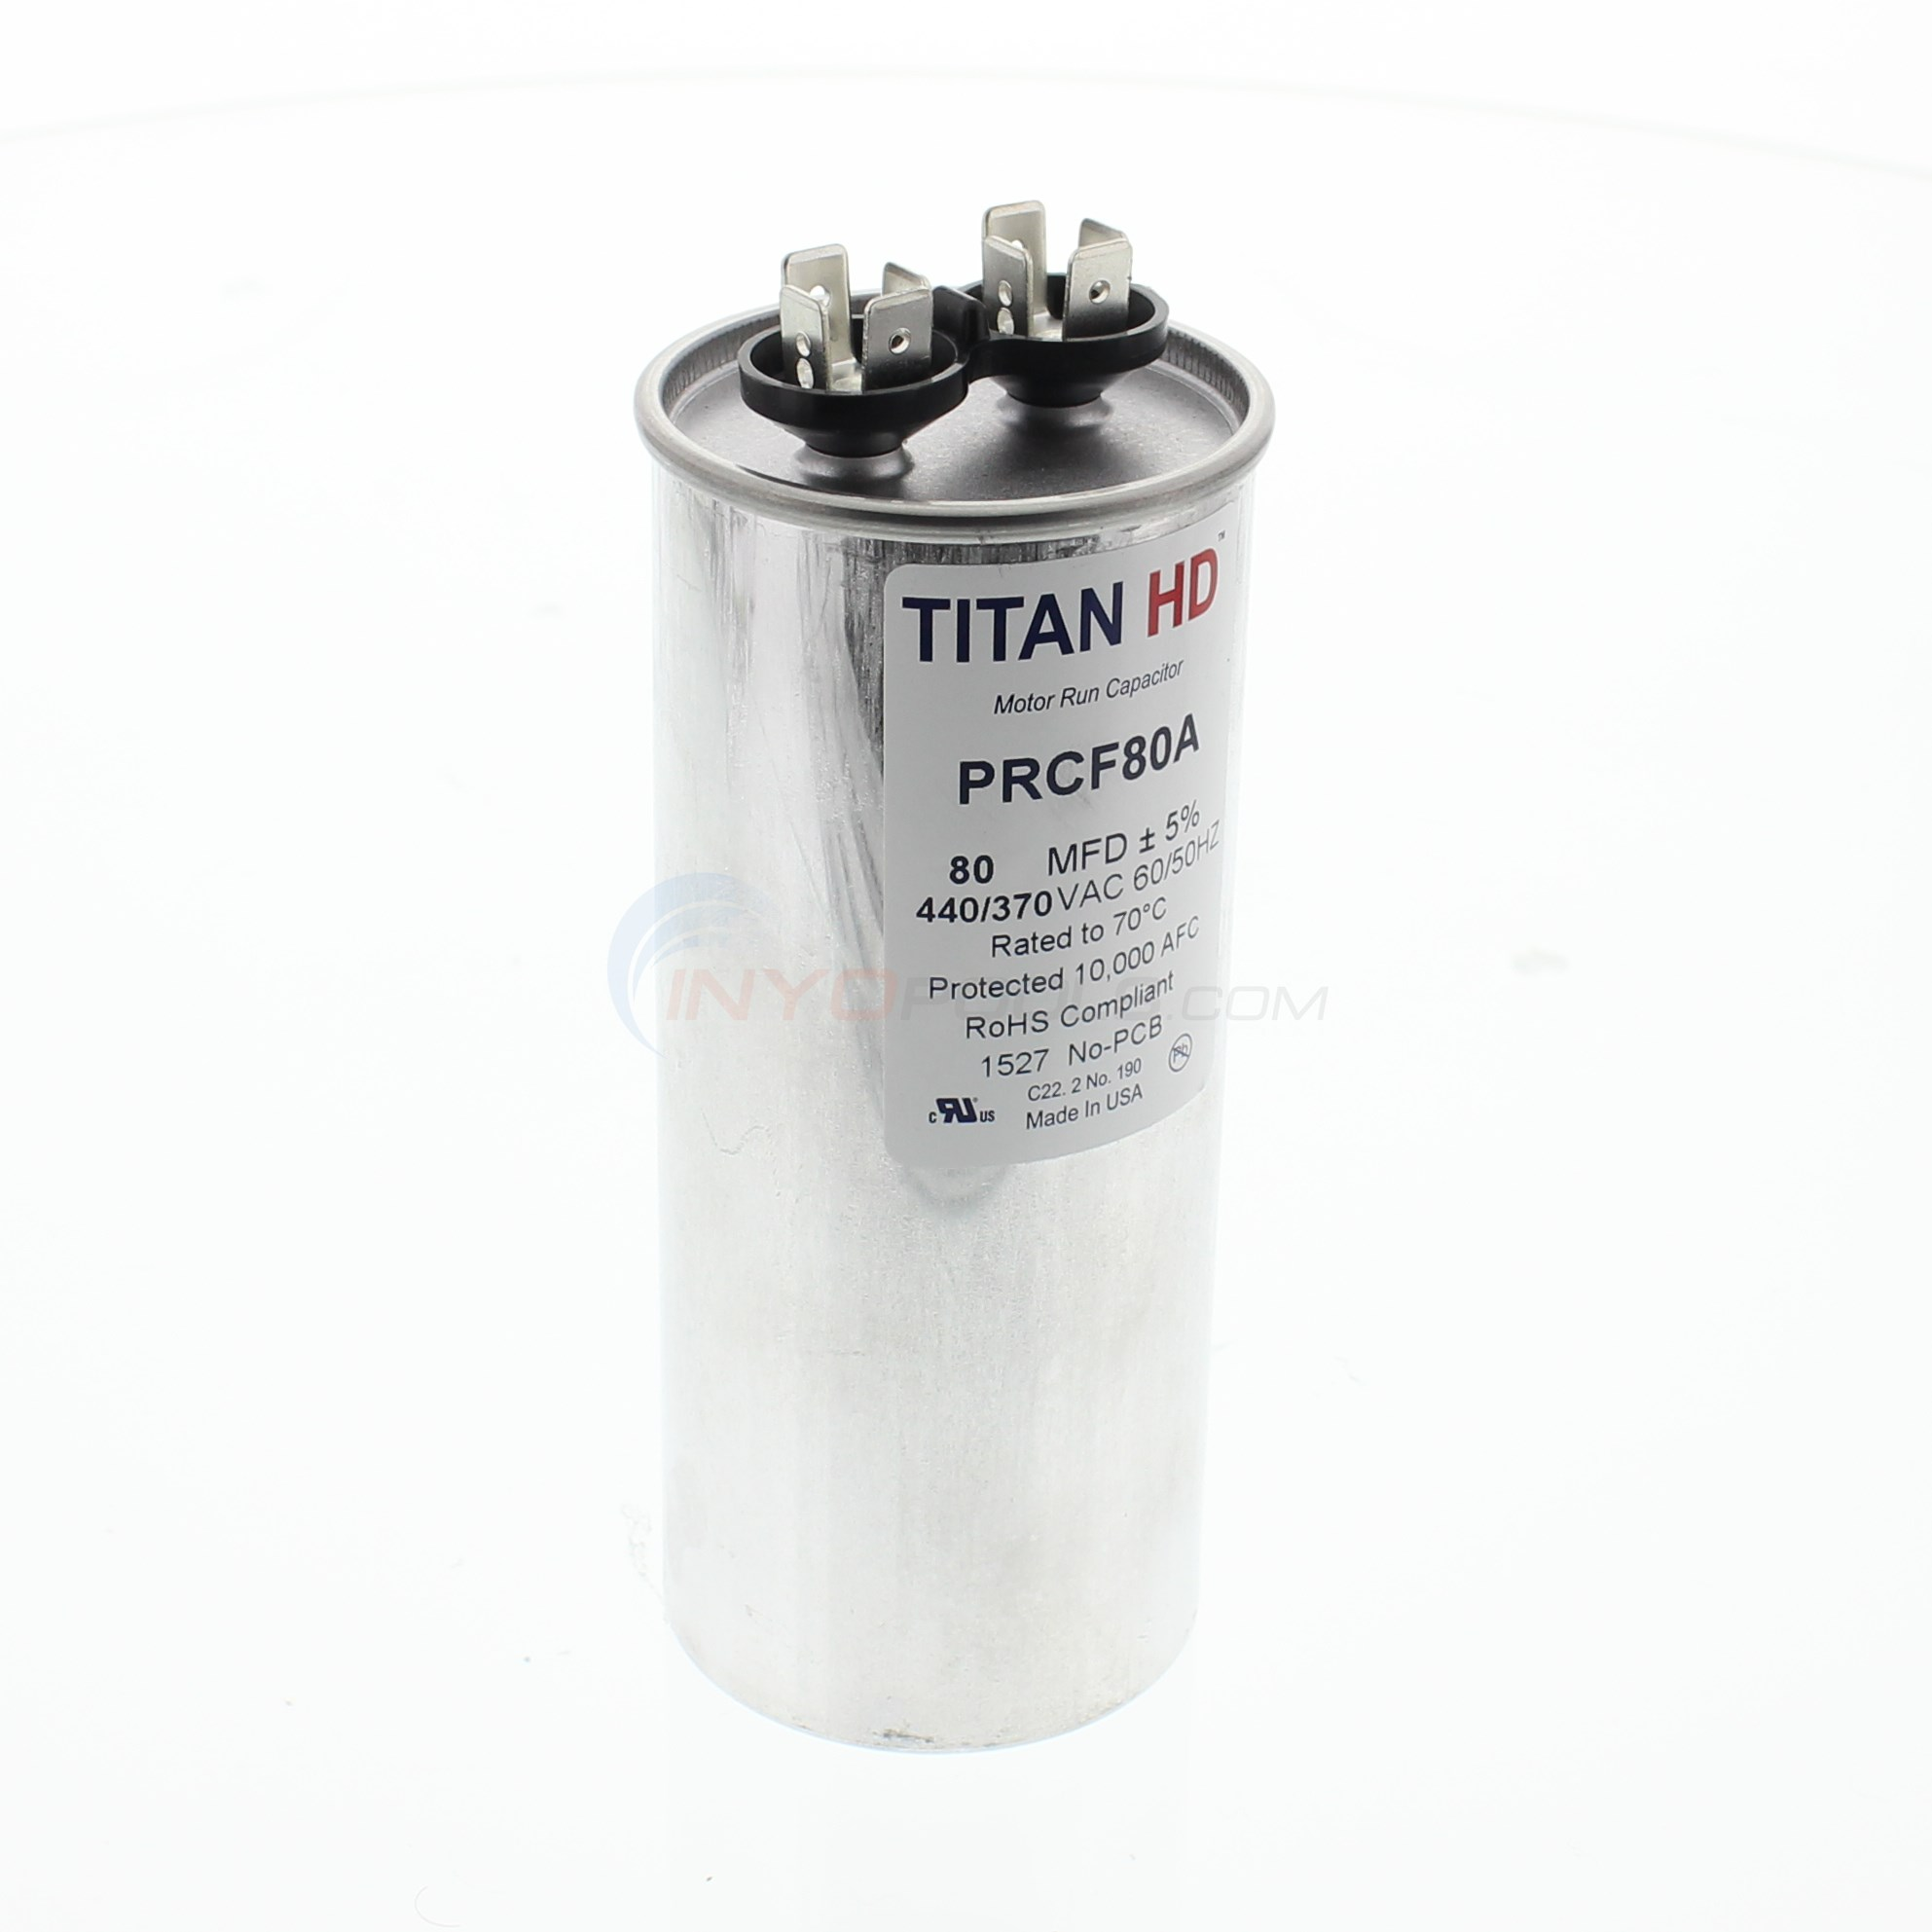 40/440 V TROPICAL 35 AND 55 CAPACITOR